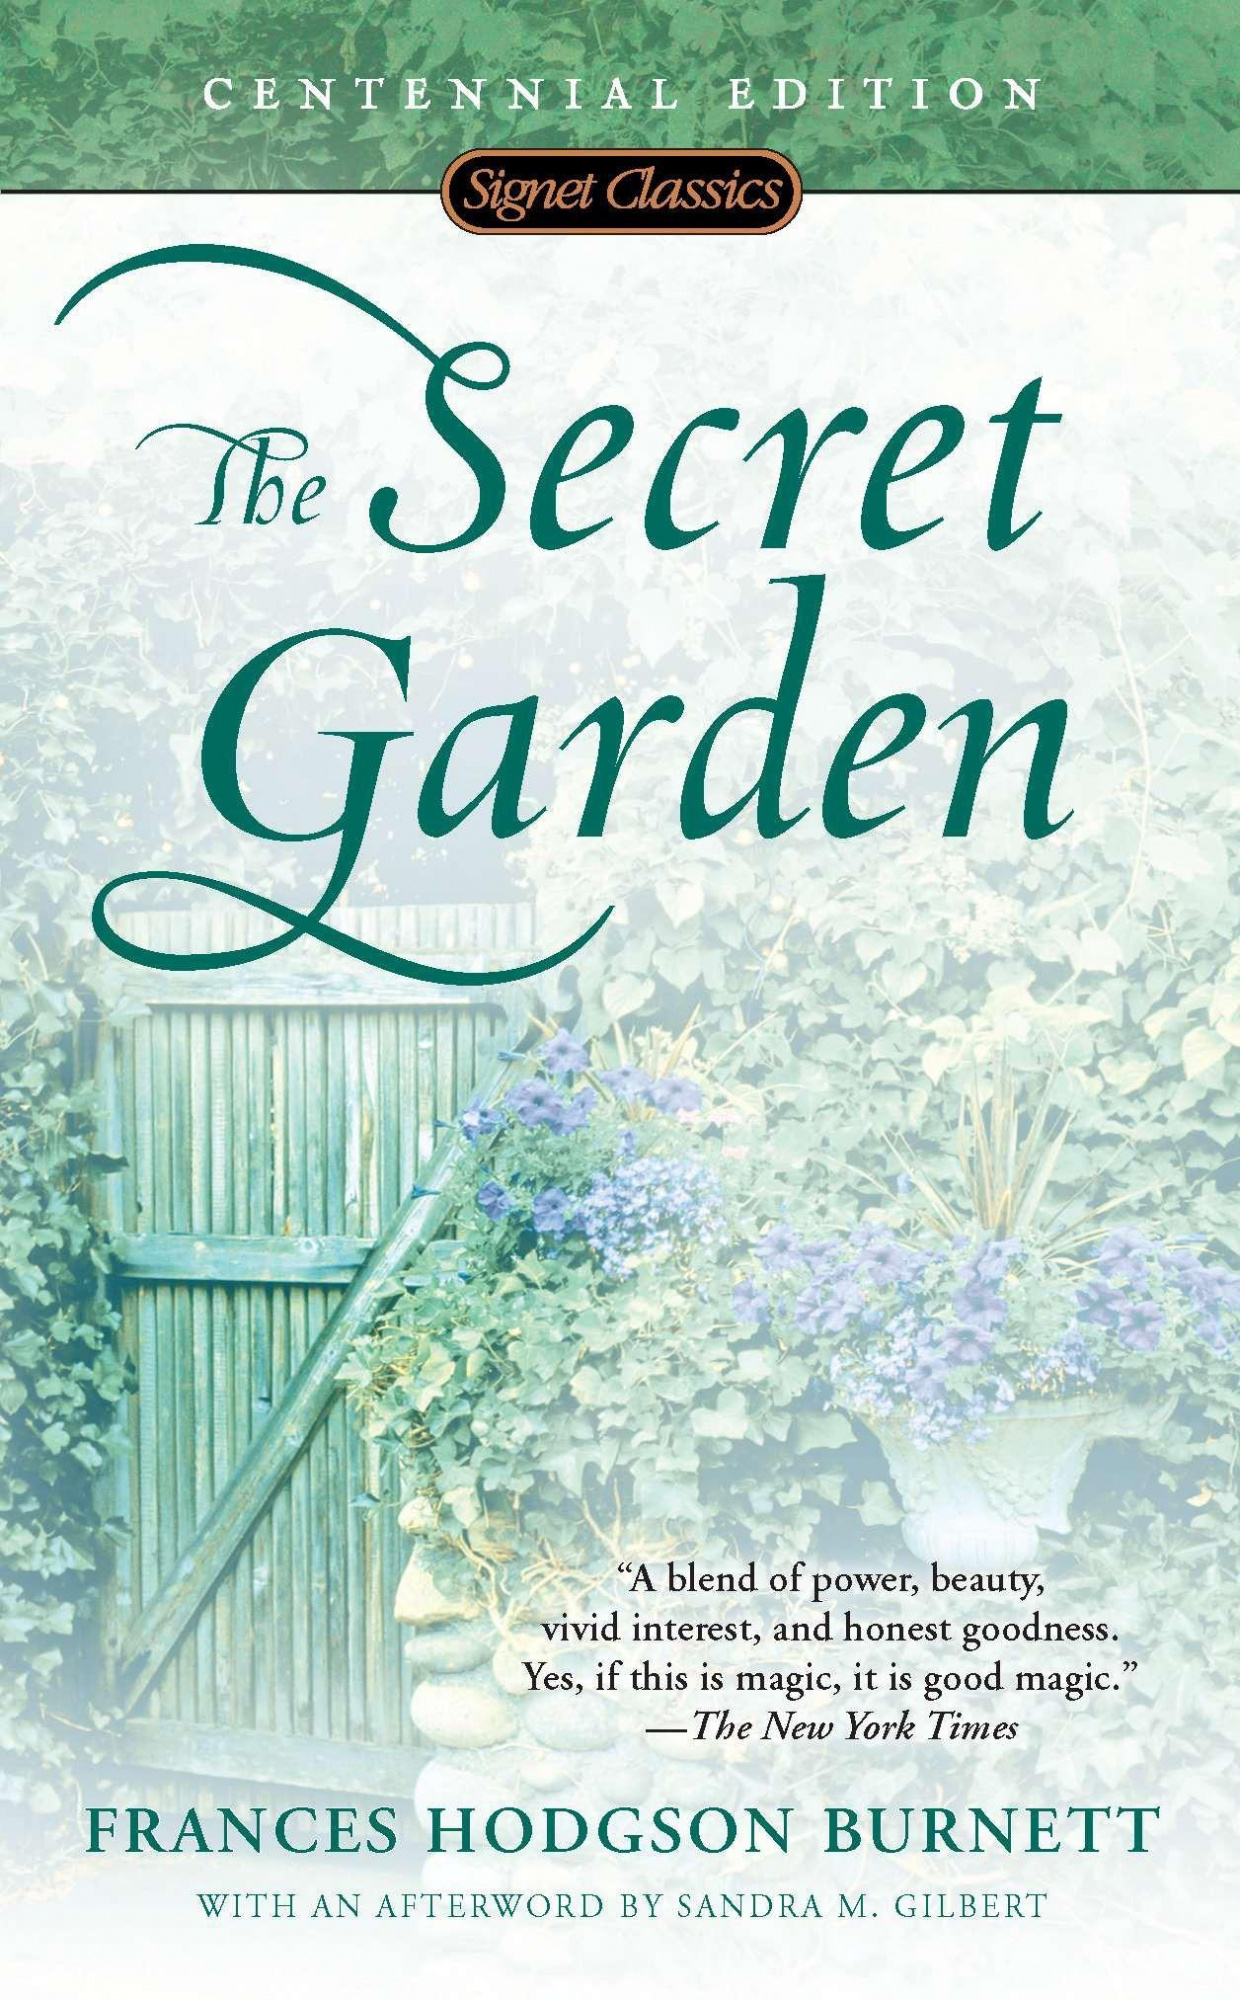 The Secret Garden by Frances Hodgson Burnett, ISBN: 9780451528834